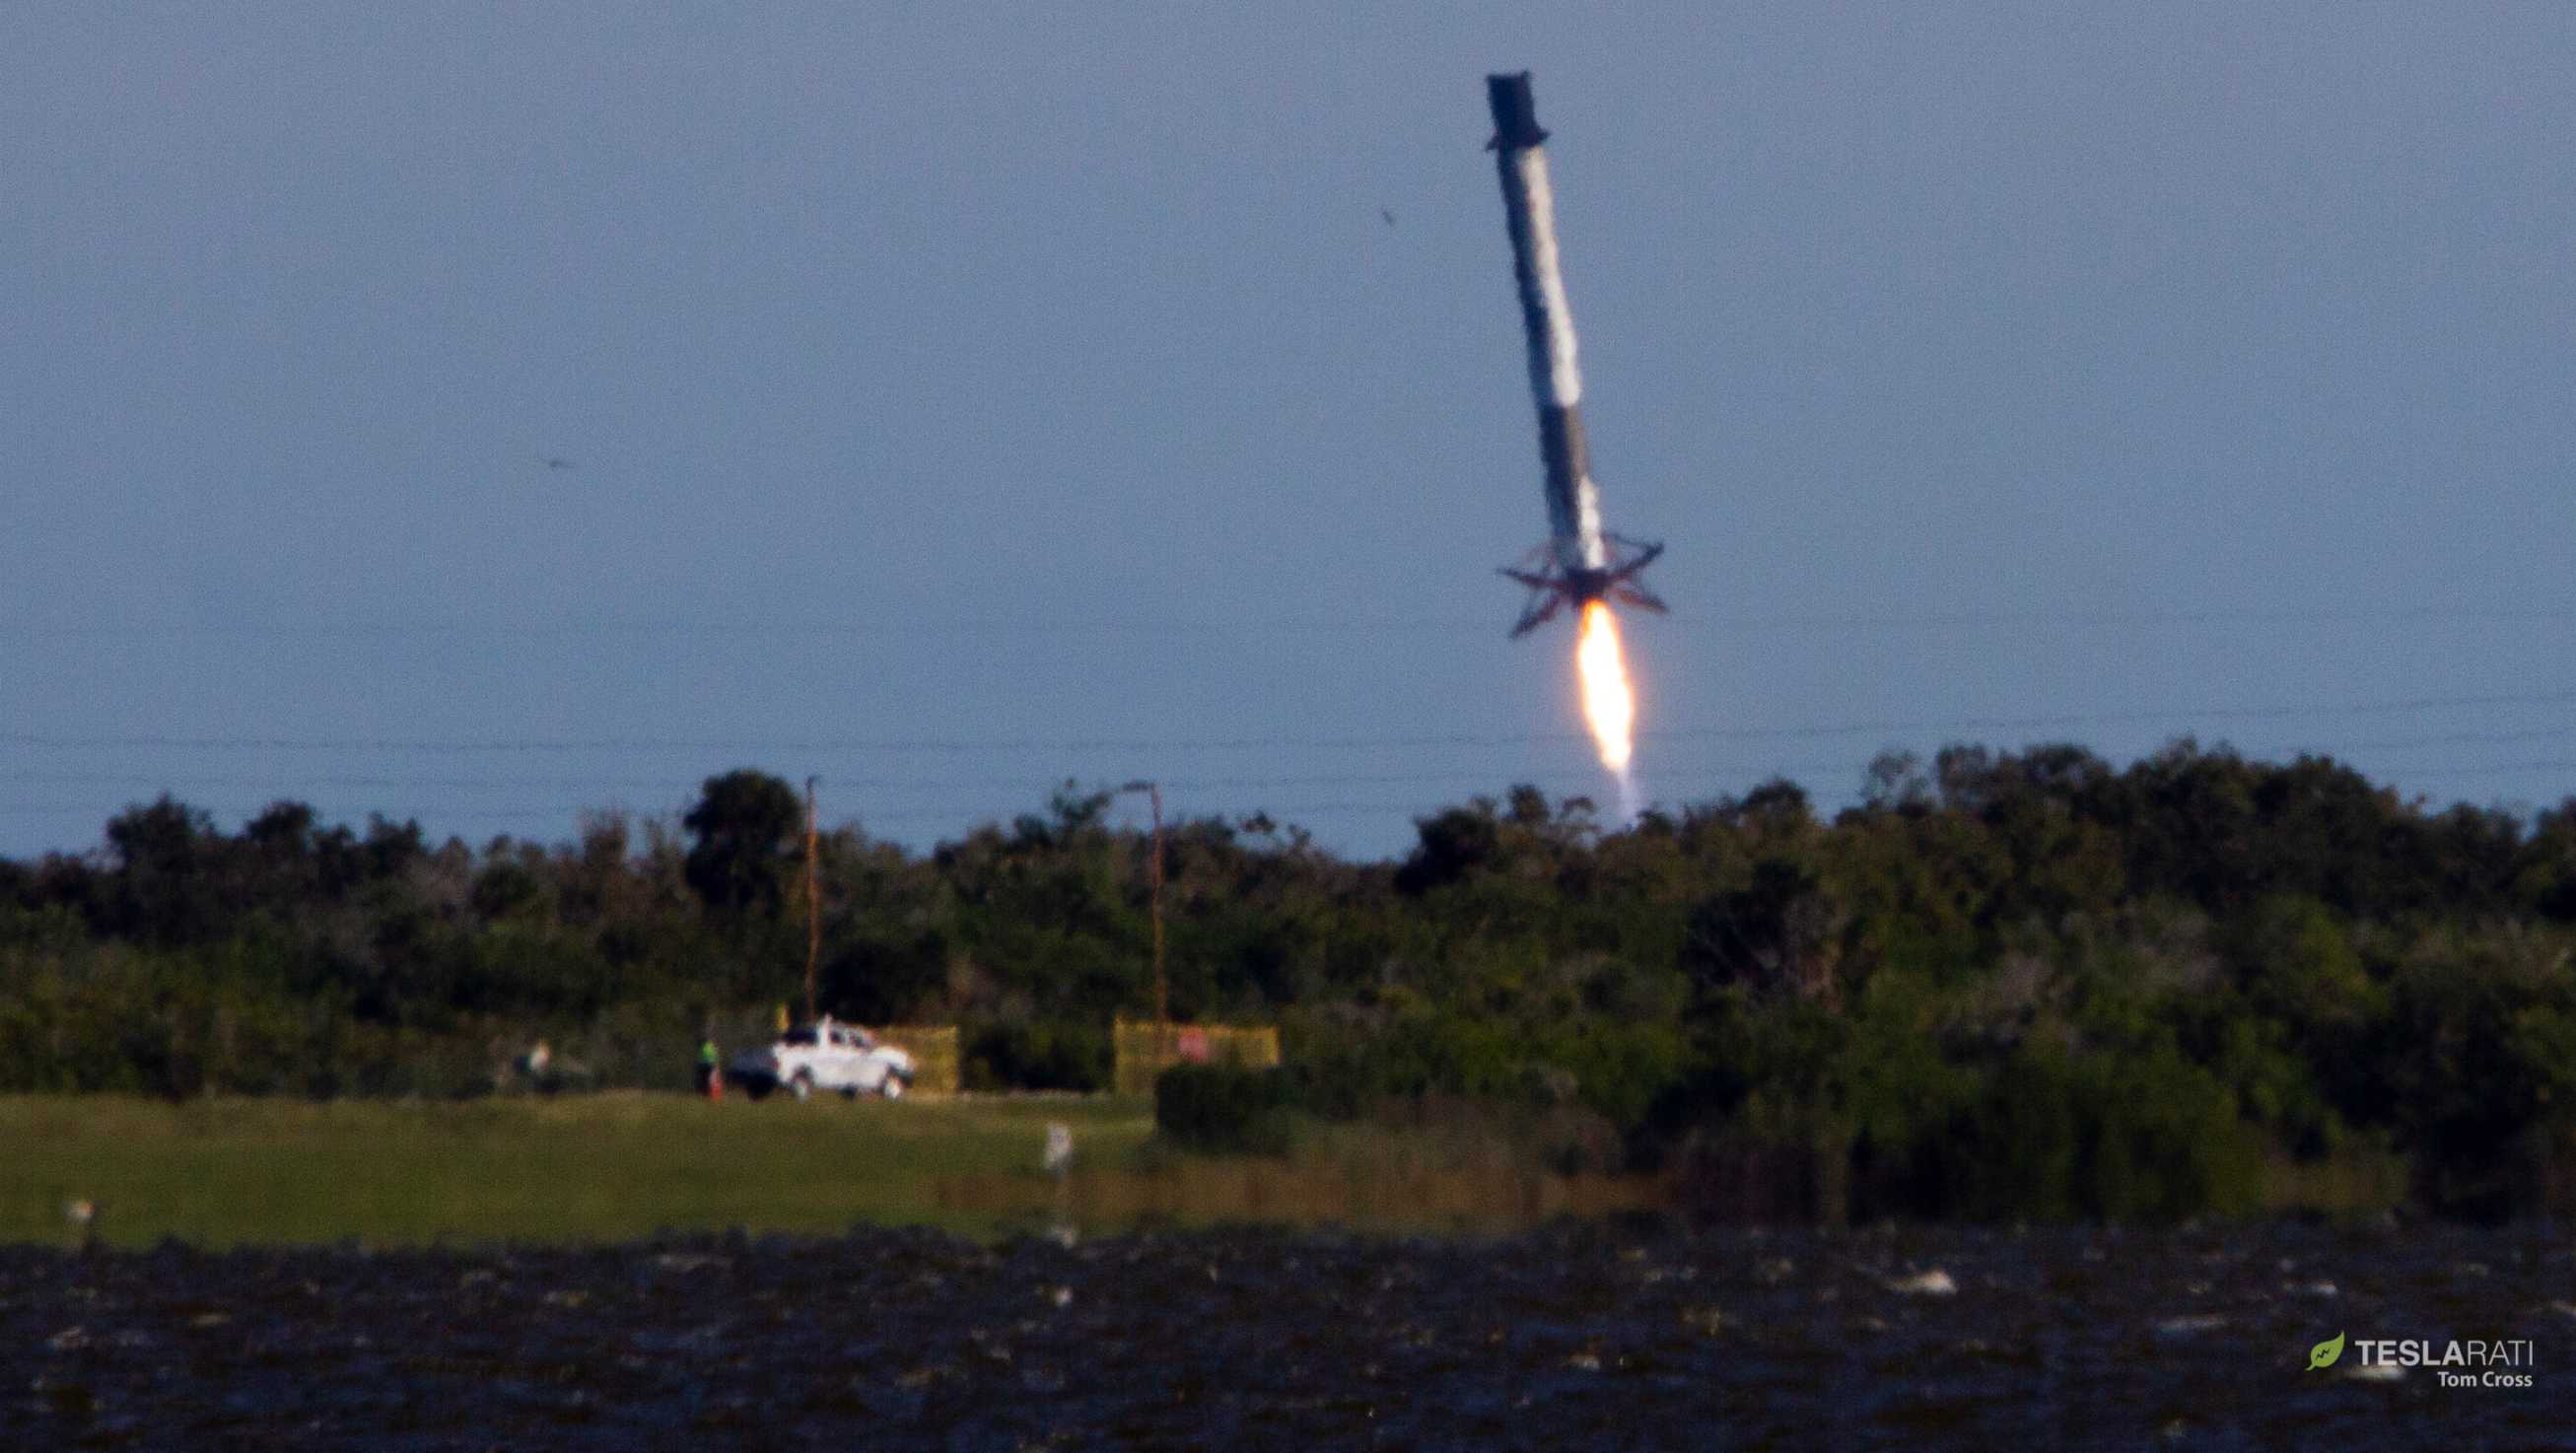 SpaceX Falcon 9 First Stage Spins Out Of Control, Lands In Ocean